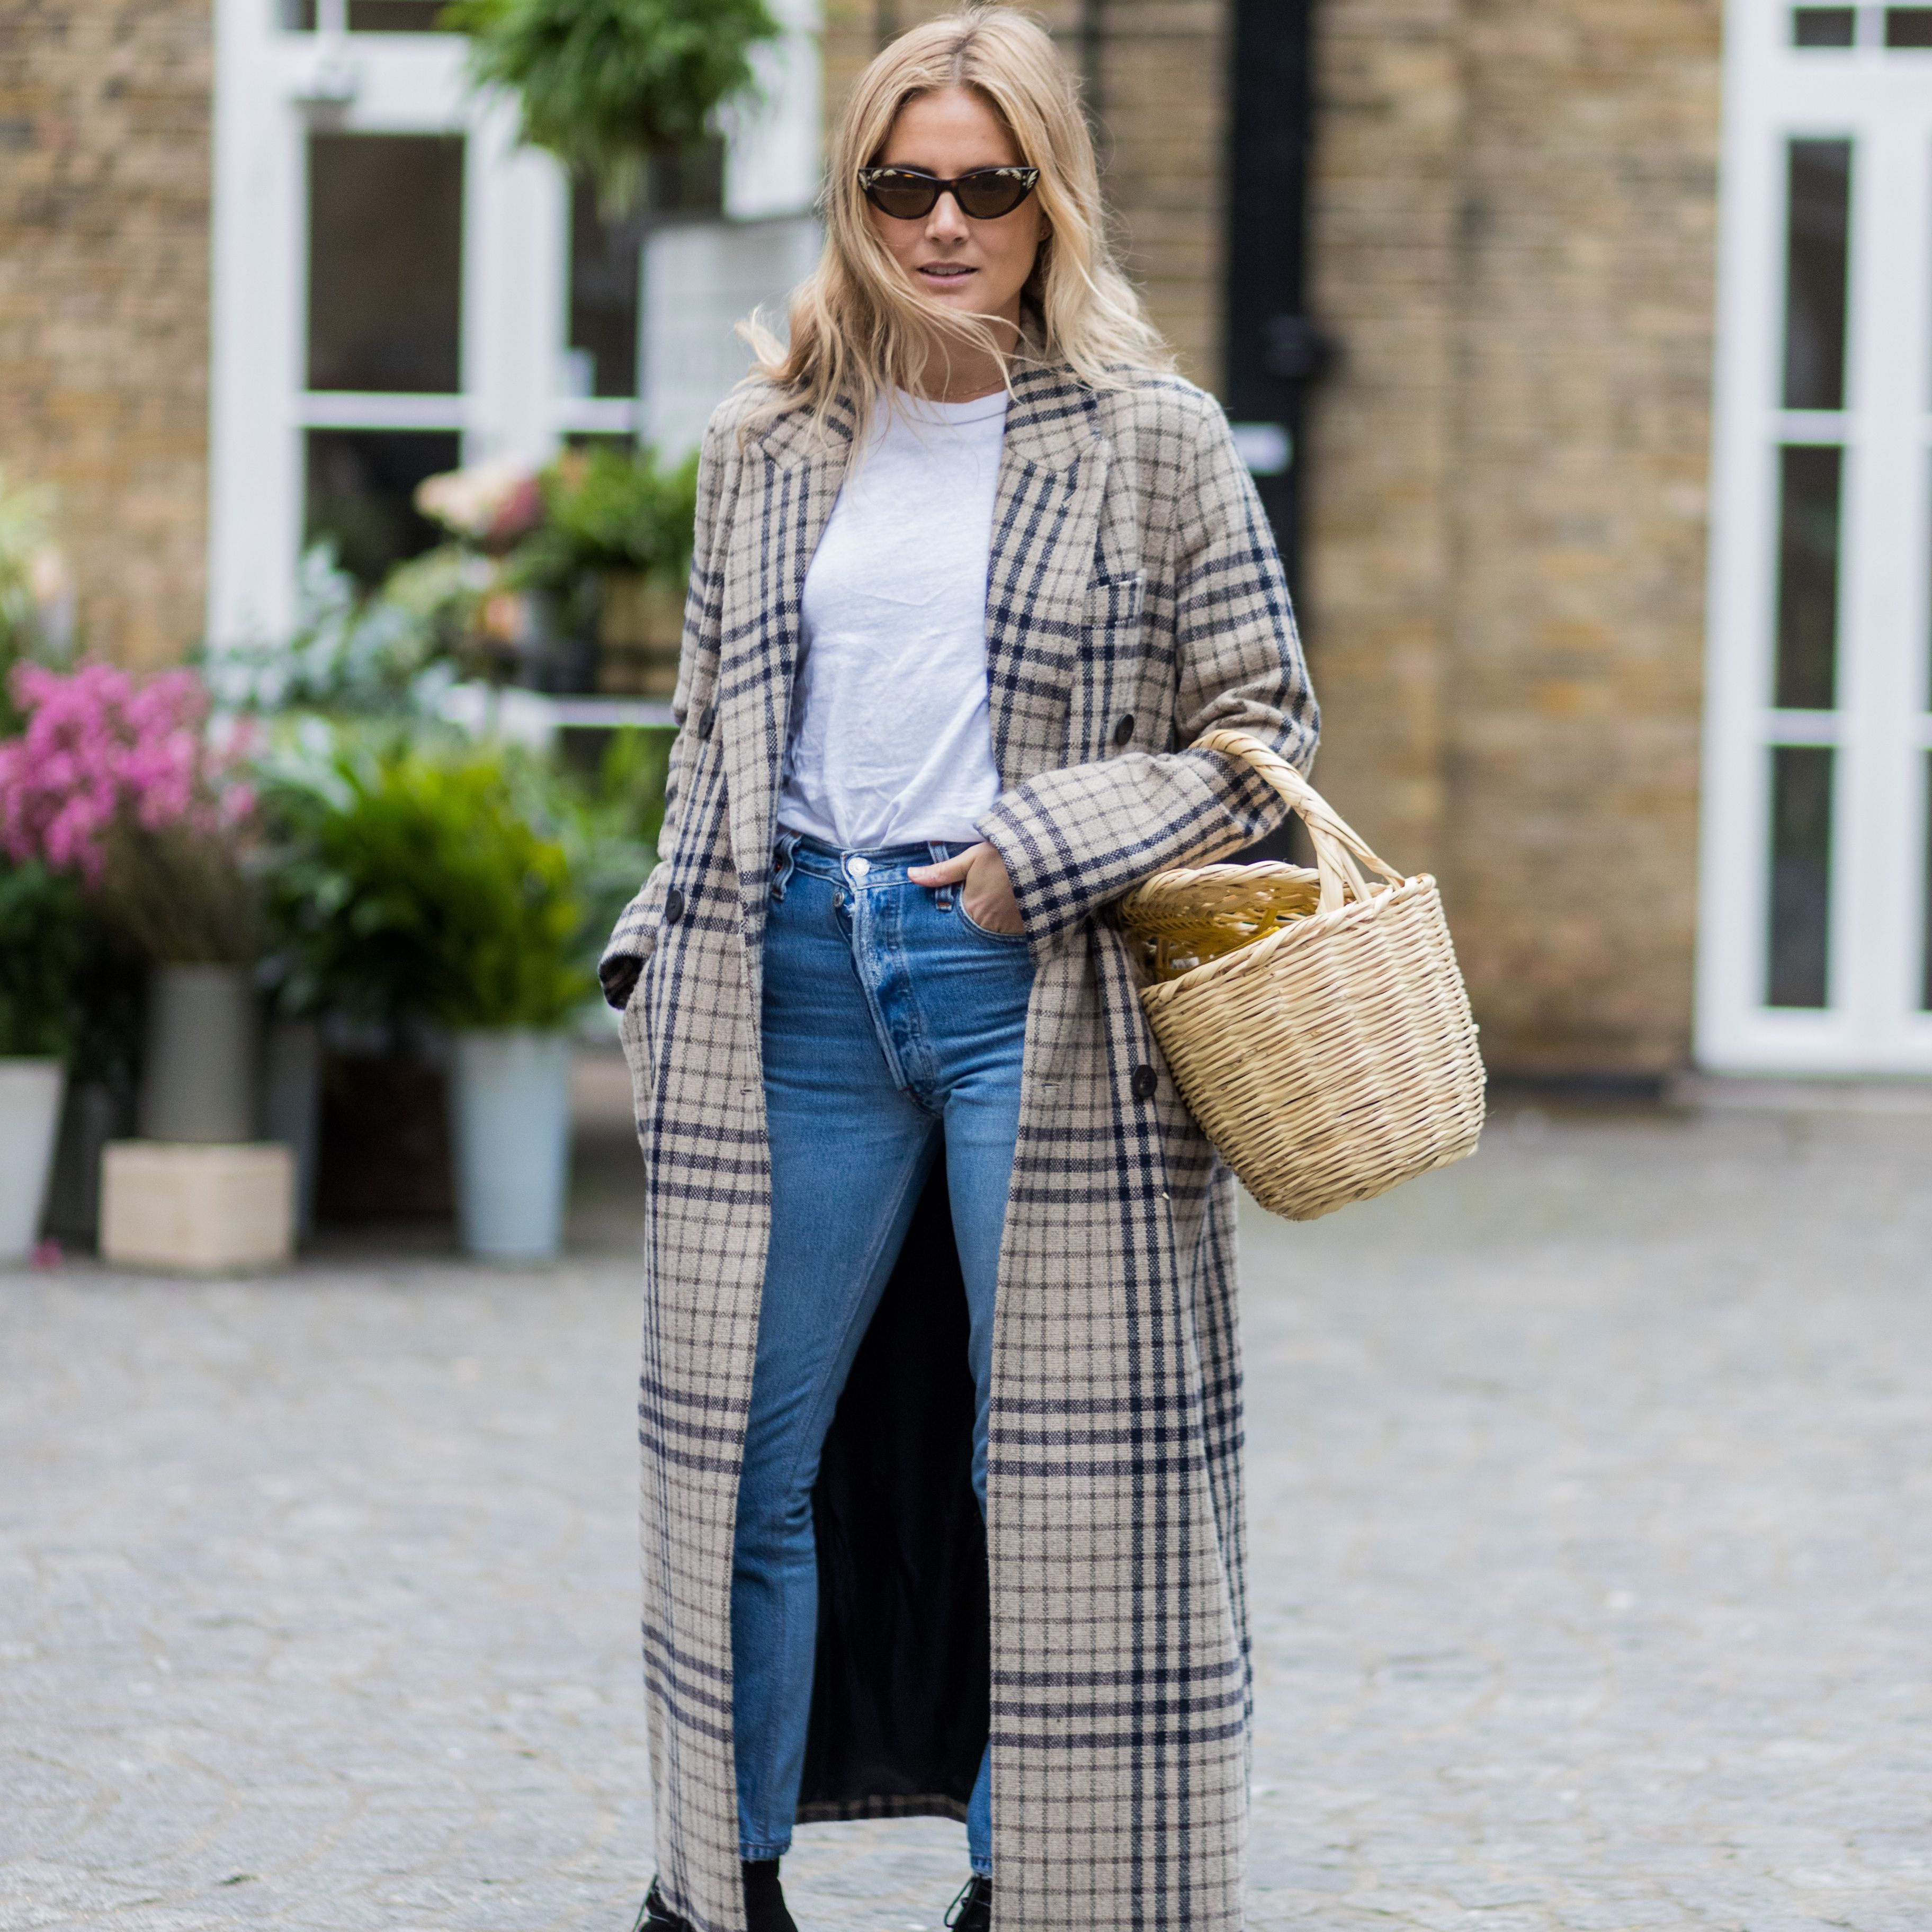 d09dbd6fc Street style woman in plaid coat and jeans and t-shirt